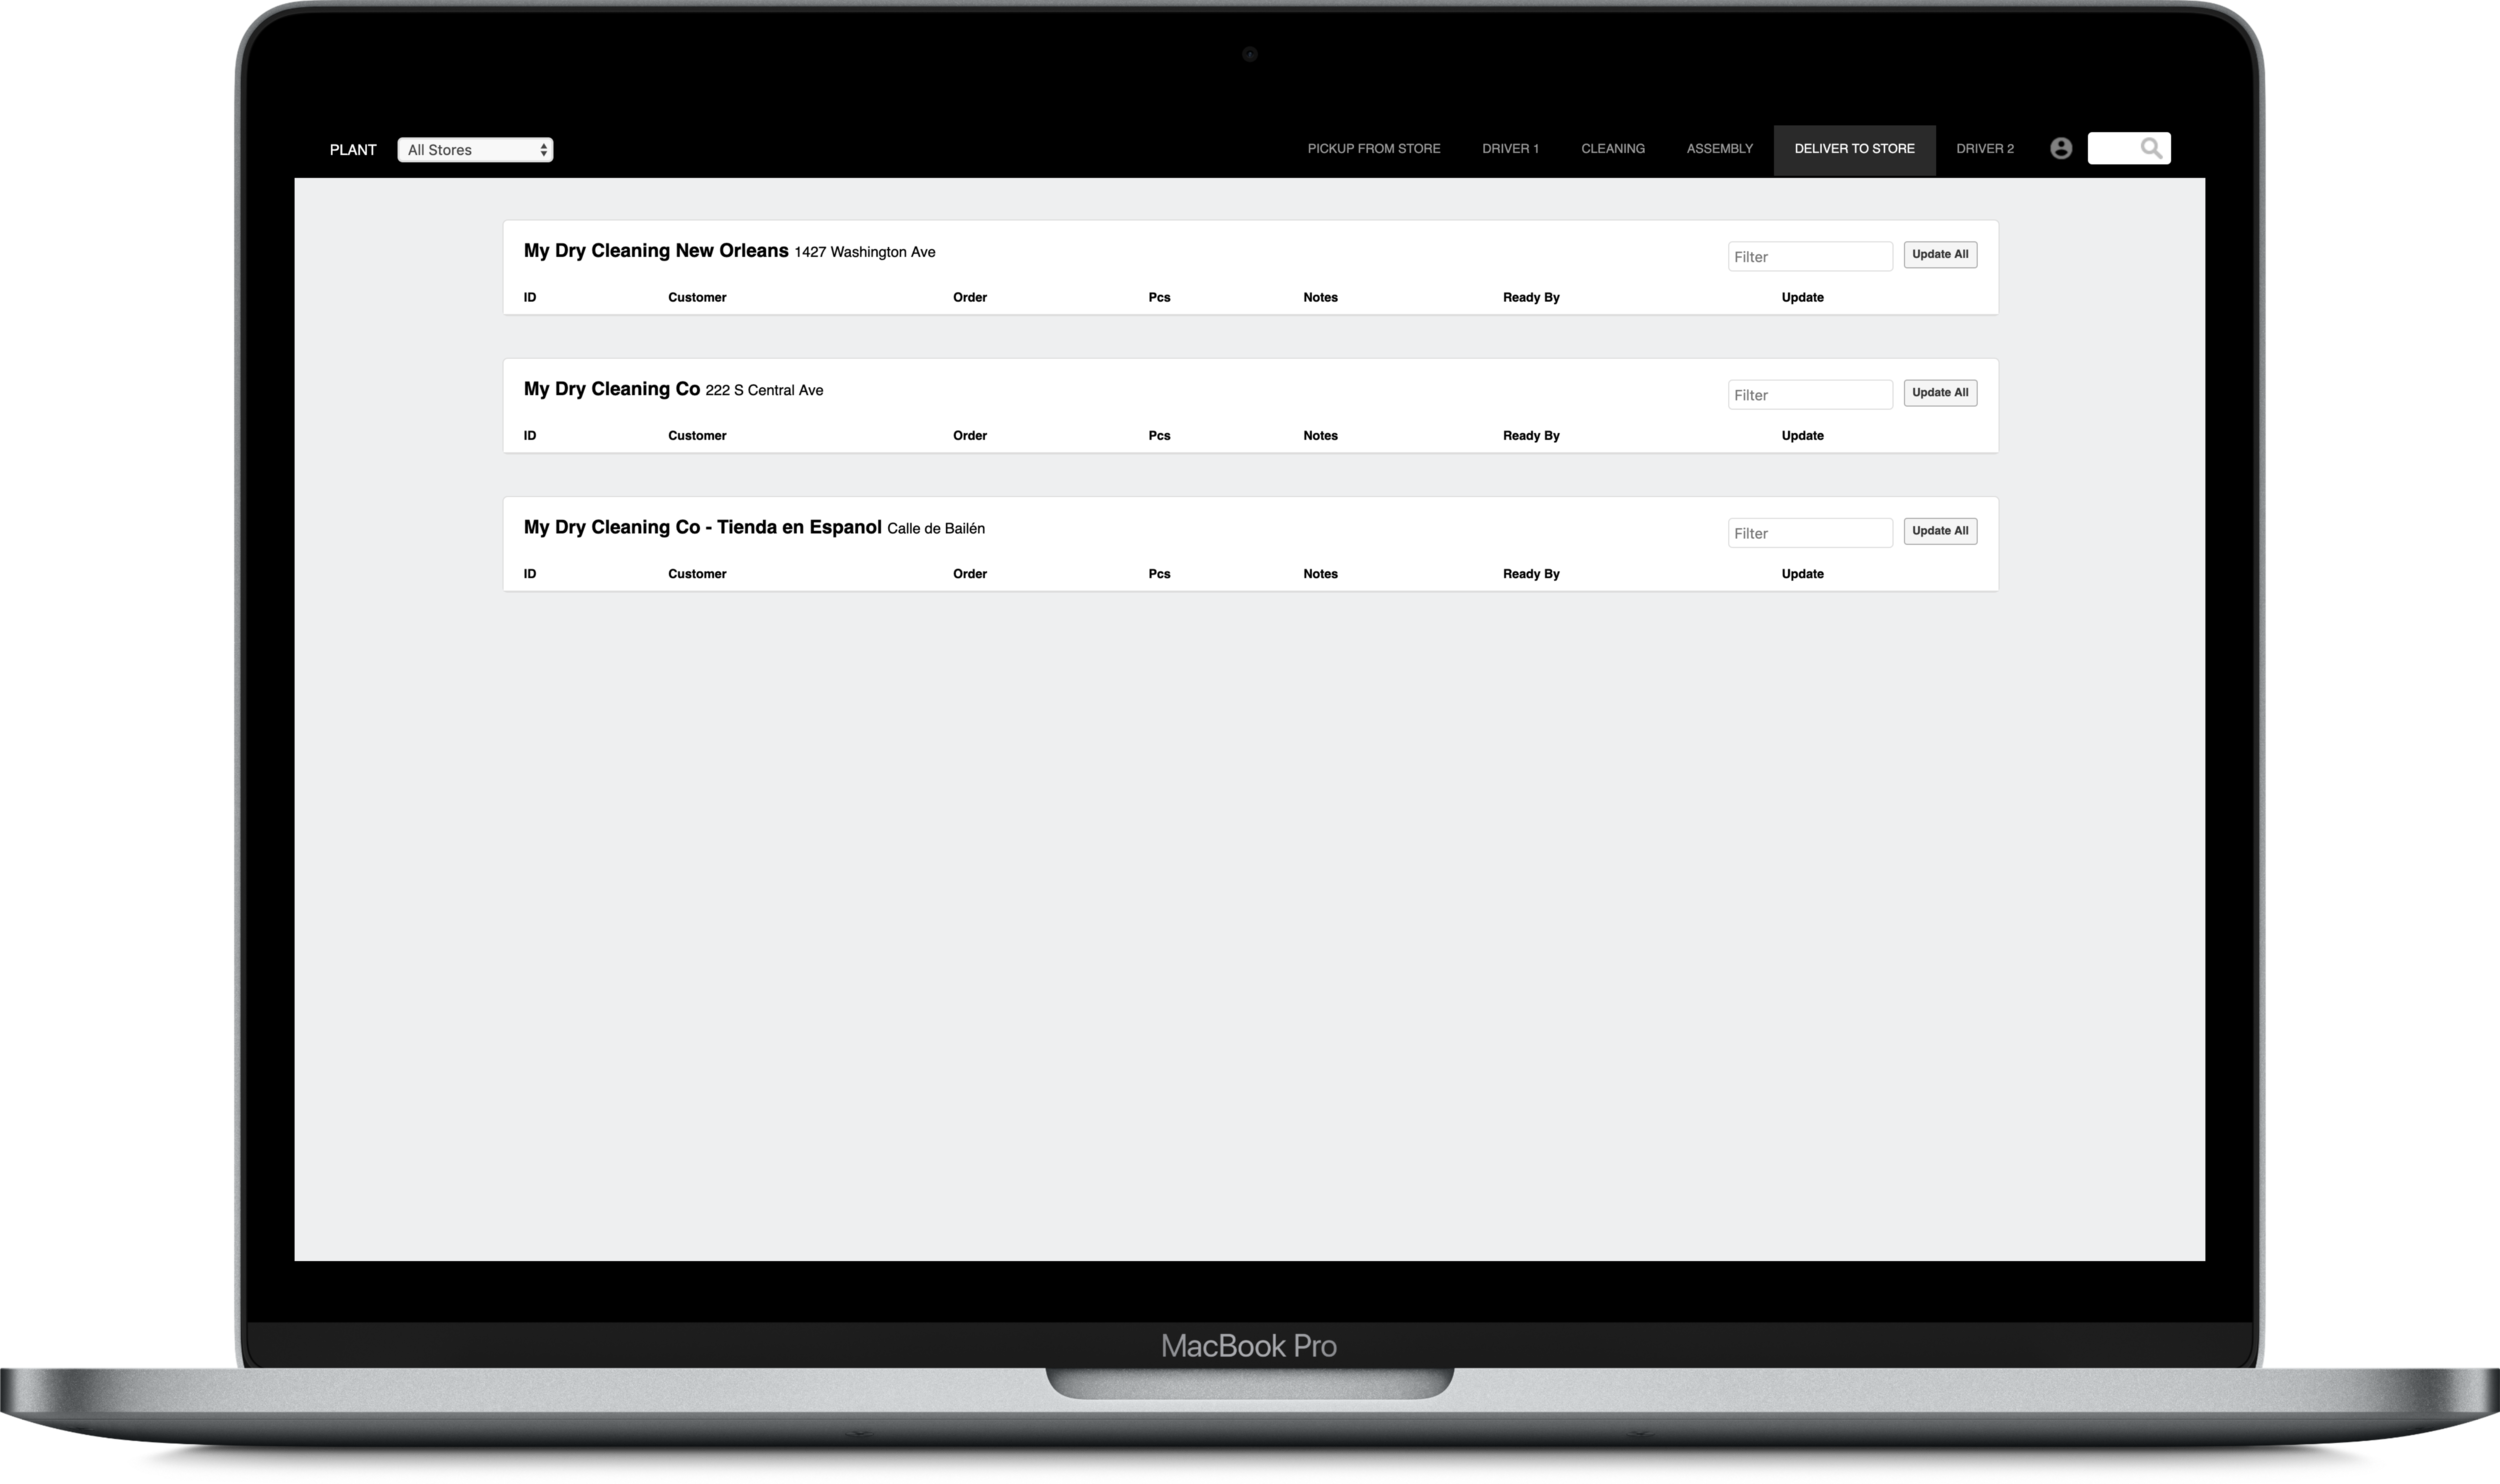 EFFICIENT ORDER MANAGEMENT. - From the back-office we can efficiently manage and track all orders across all our locations in at one glance. We can view reports that analyse our customers' needs in order to continually find ways to provide a better, more tailored service.